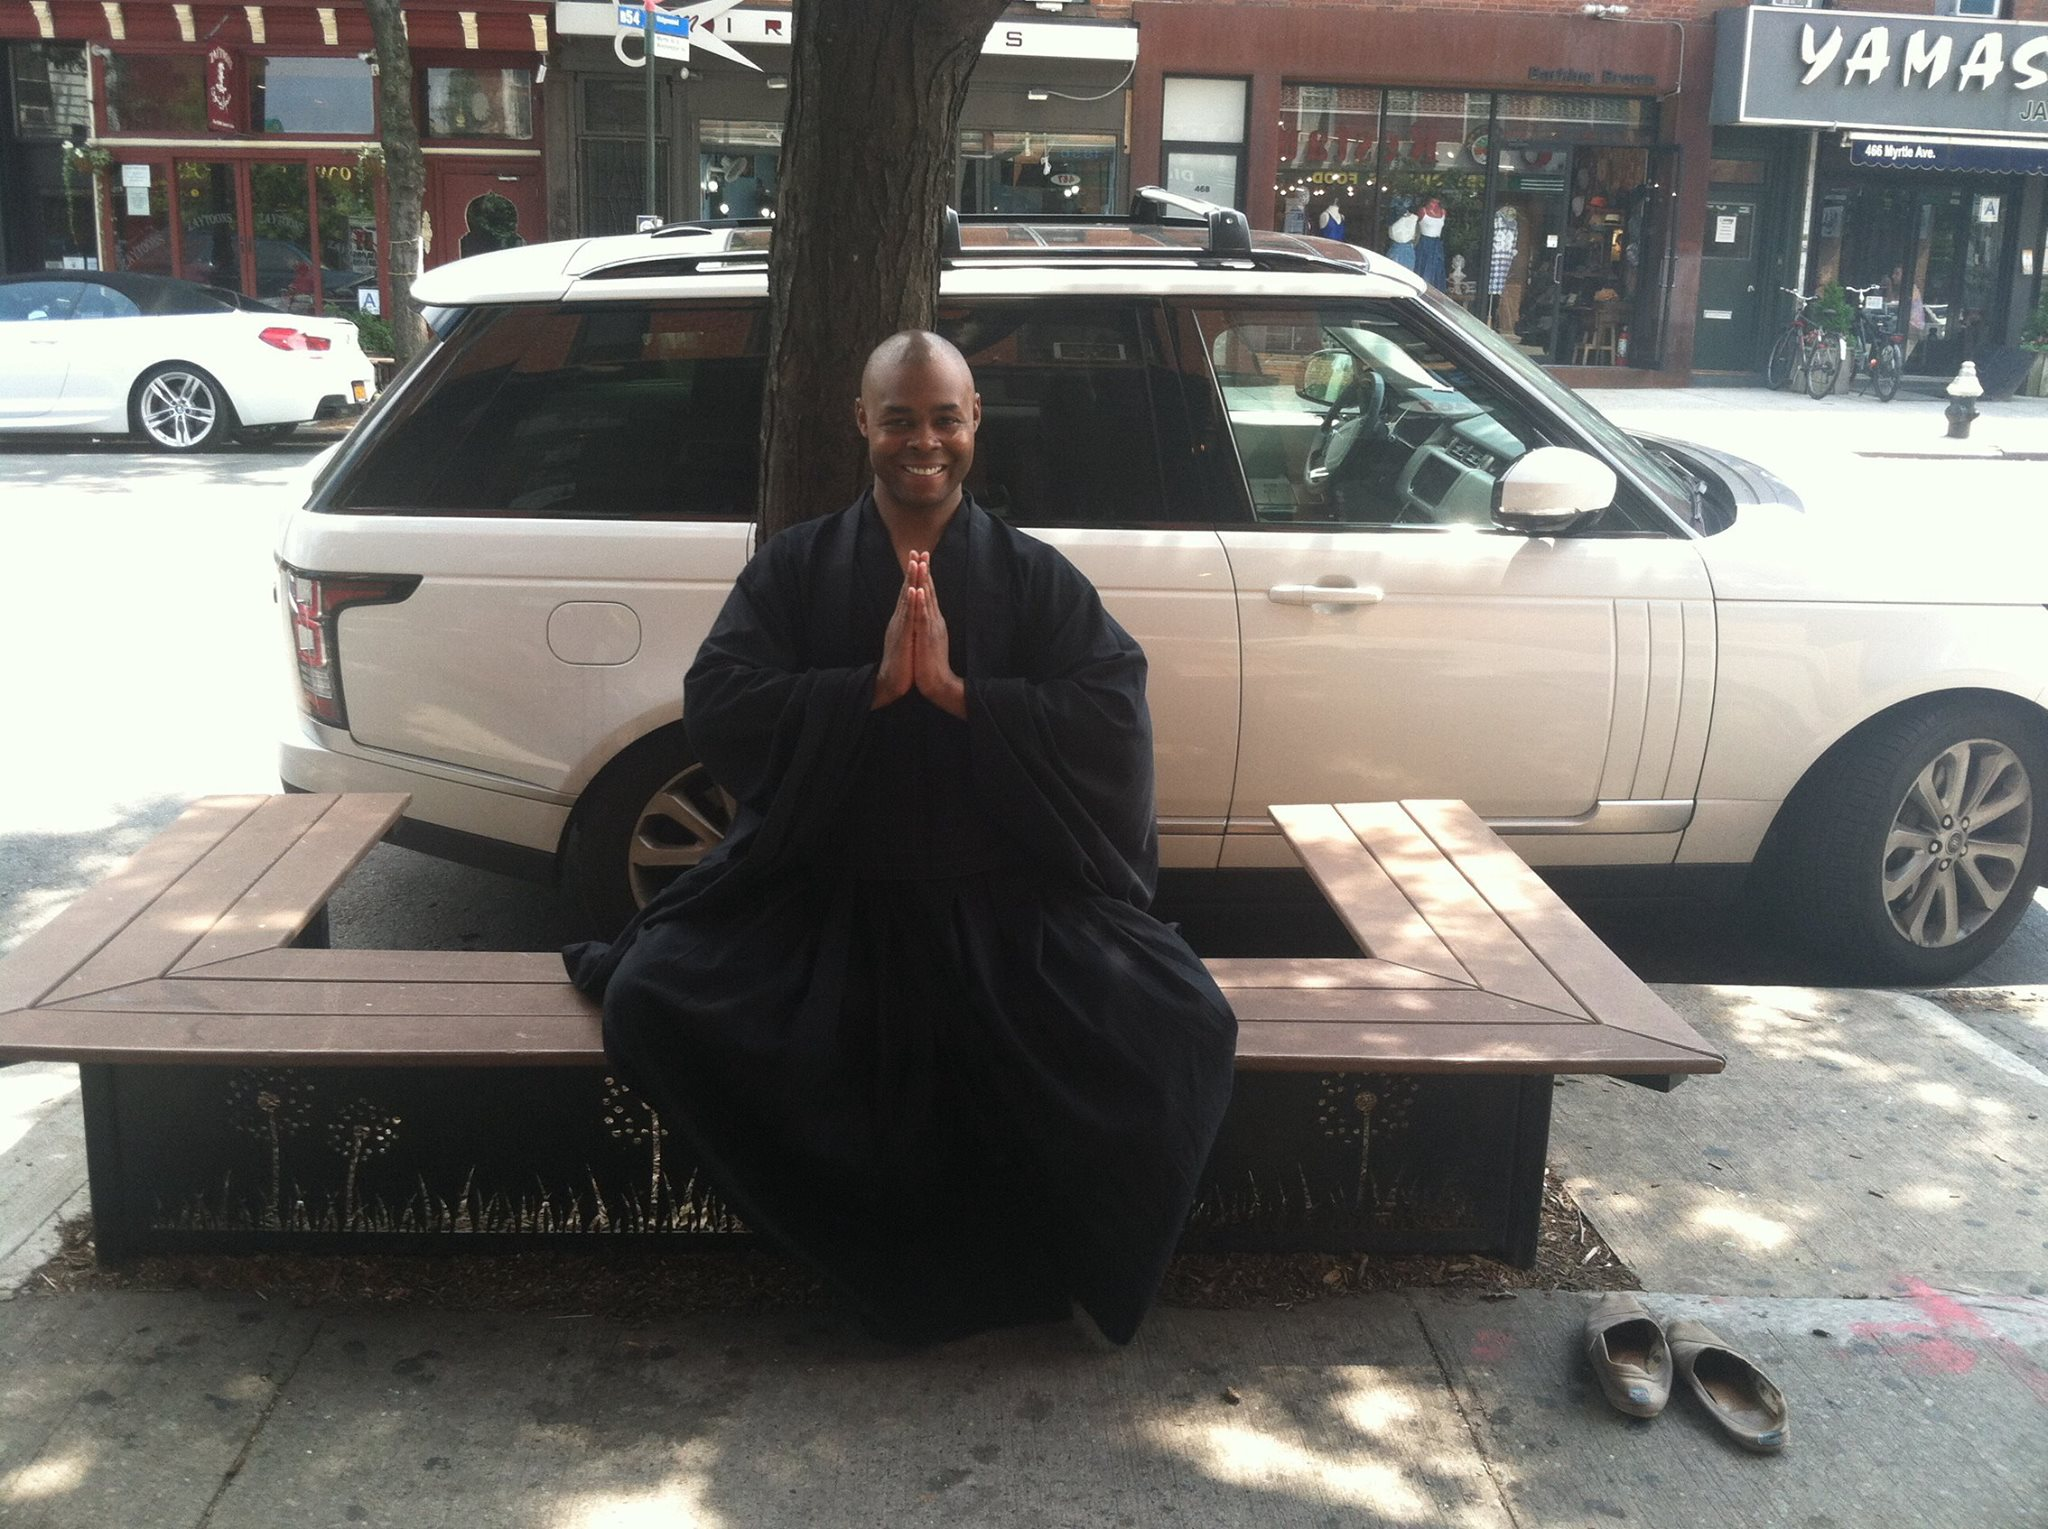 A Brooklyn Monk